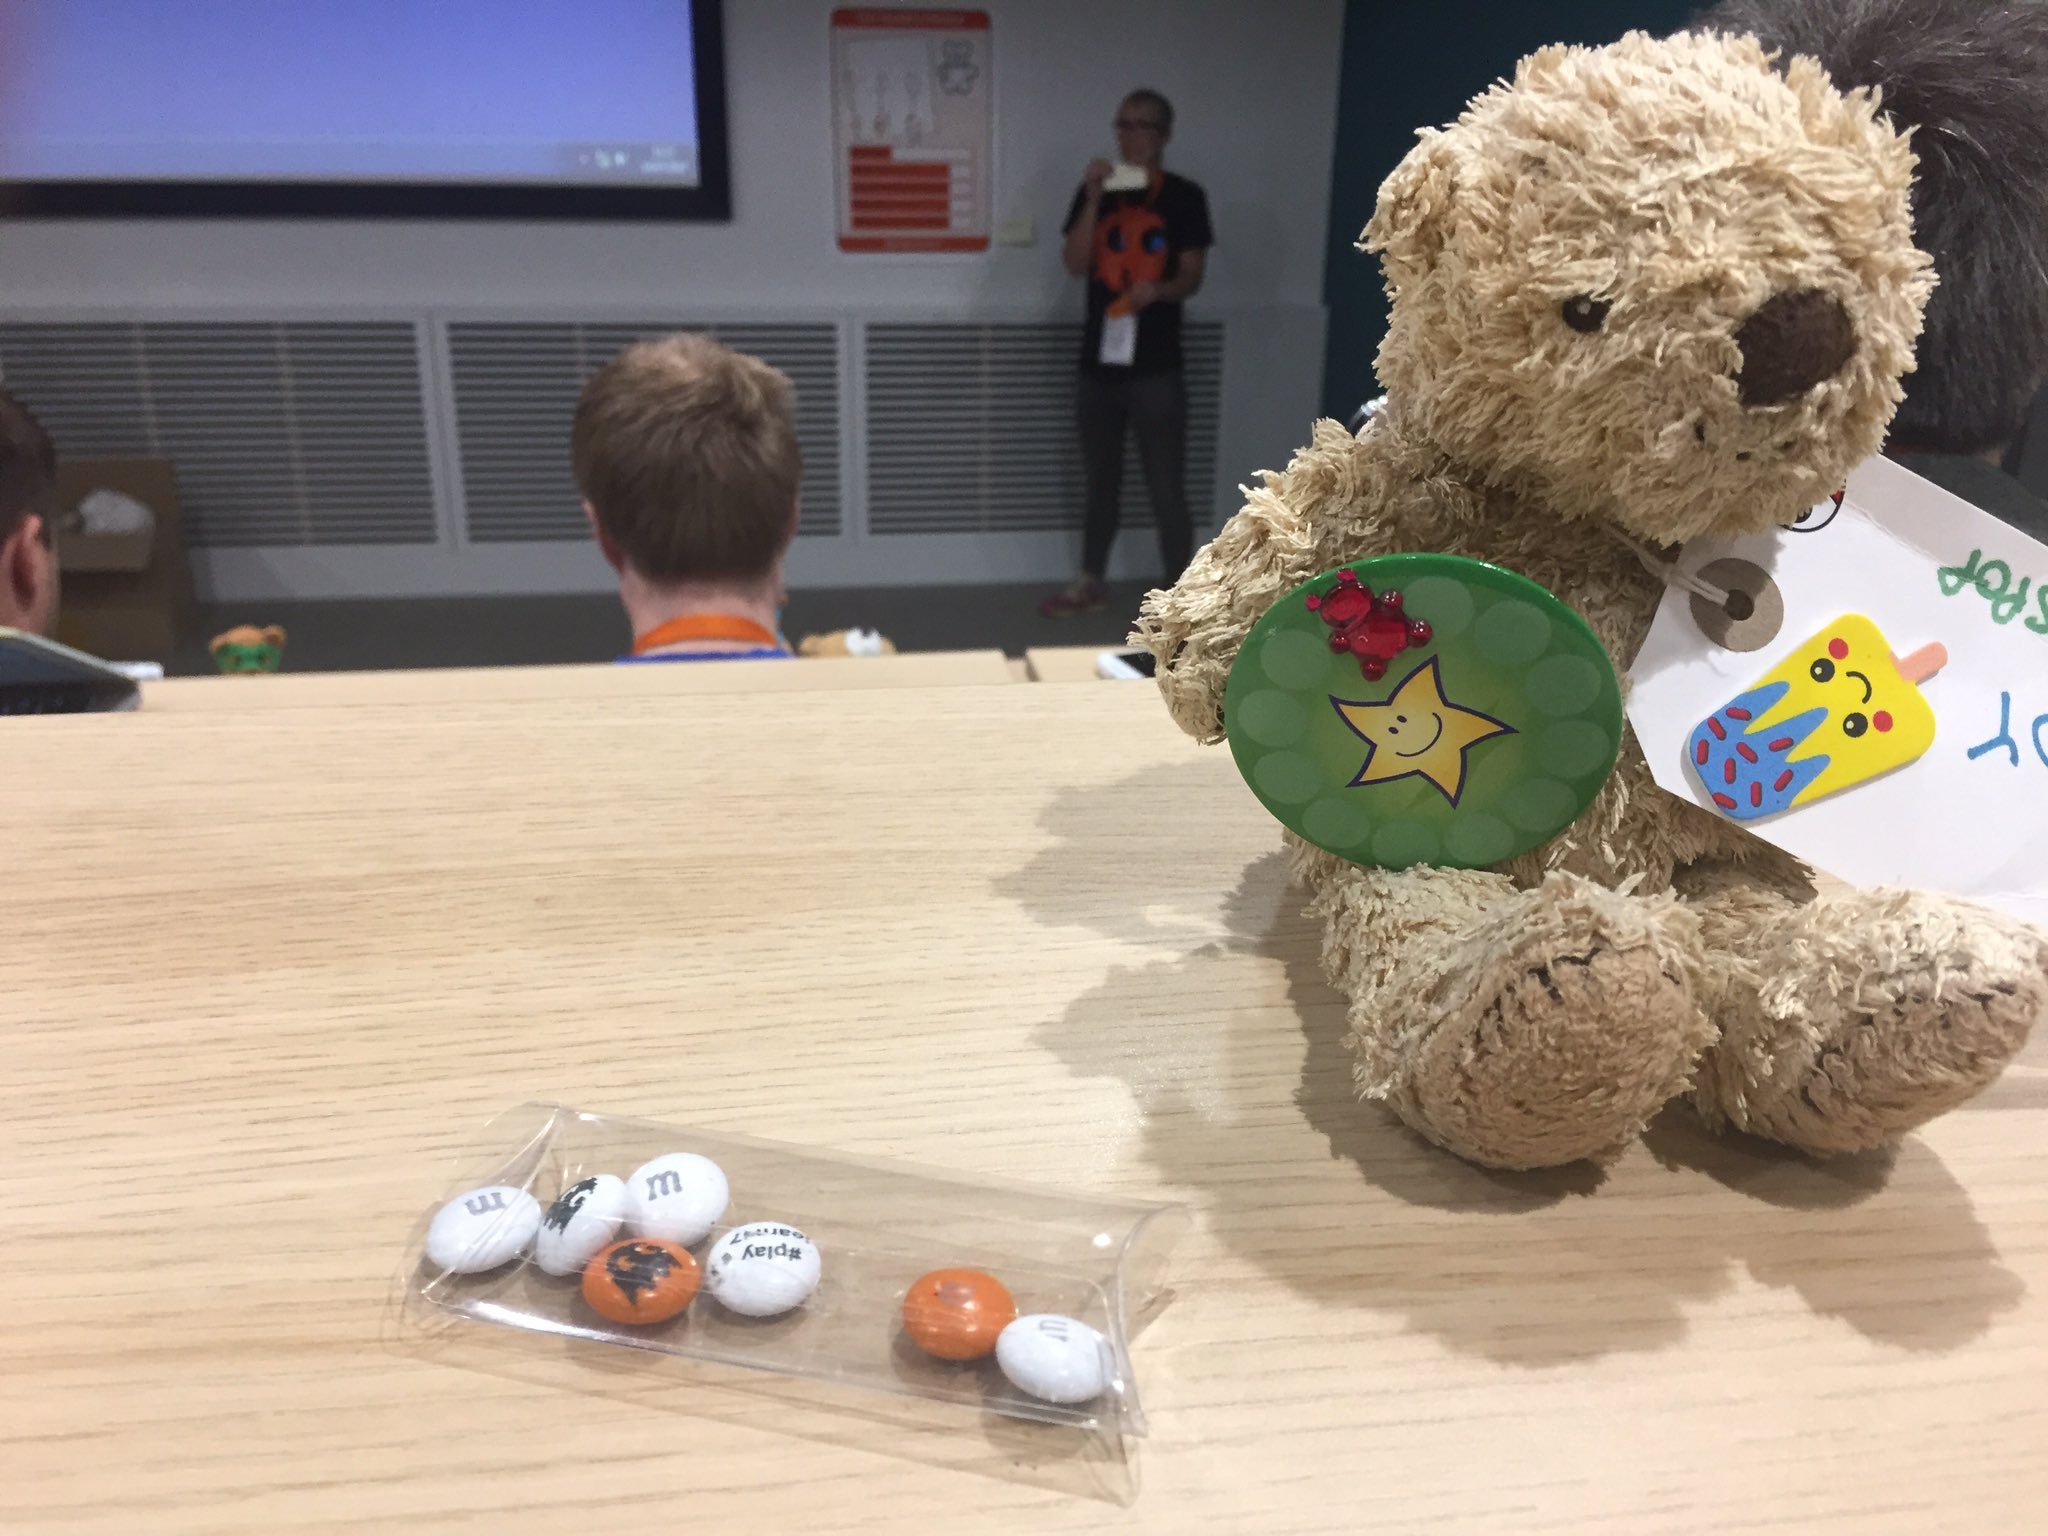 Well done to all the toys, stars of #PlayLearn17 @playlearnconf  ✨🦄🐦🐥🐻🐷🦅🦈🌟 https://t.co/pAl8rkBYCT